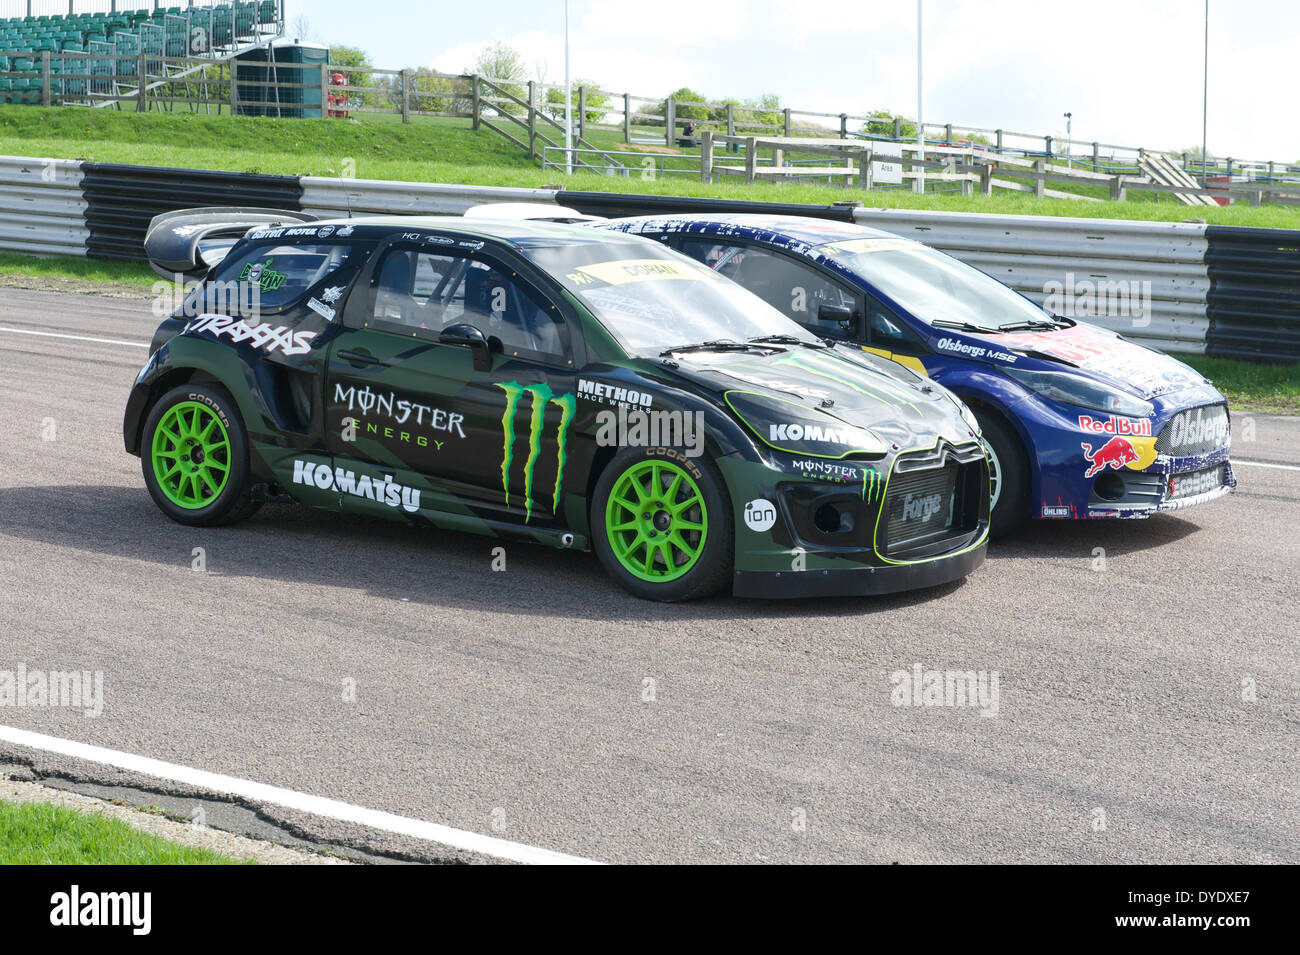 Monster Energy Sponsored Citroen And Ford Fiesta St Wrx Cars Stock